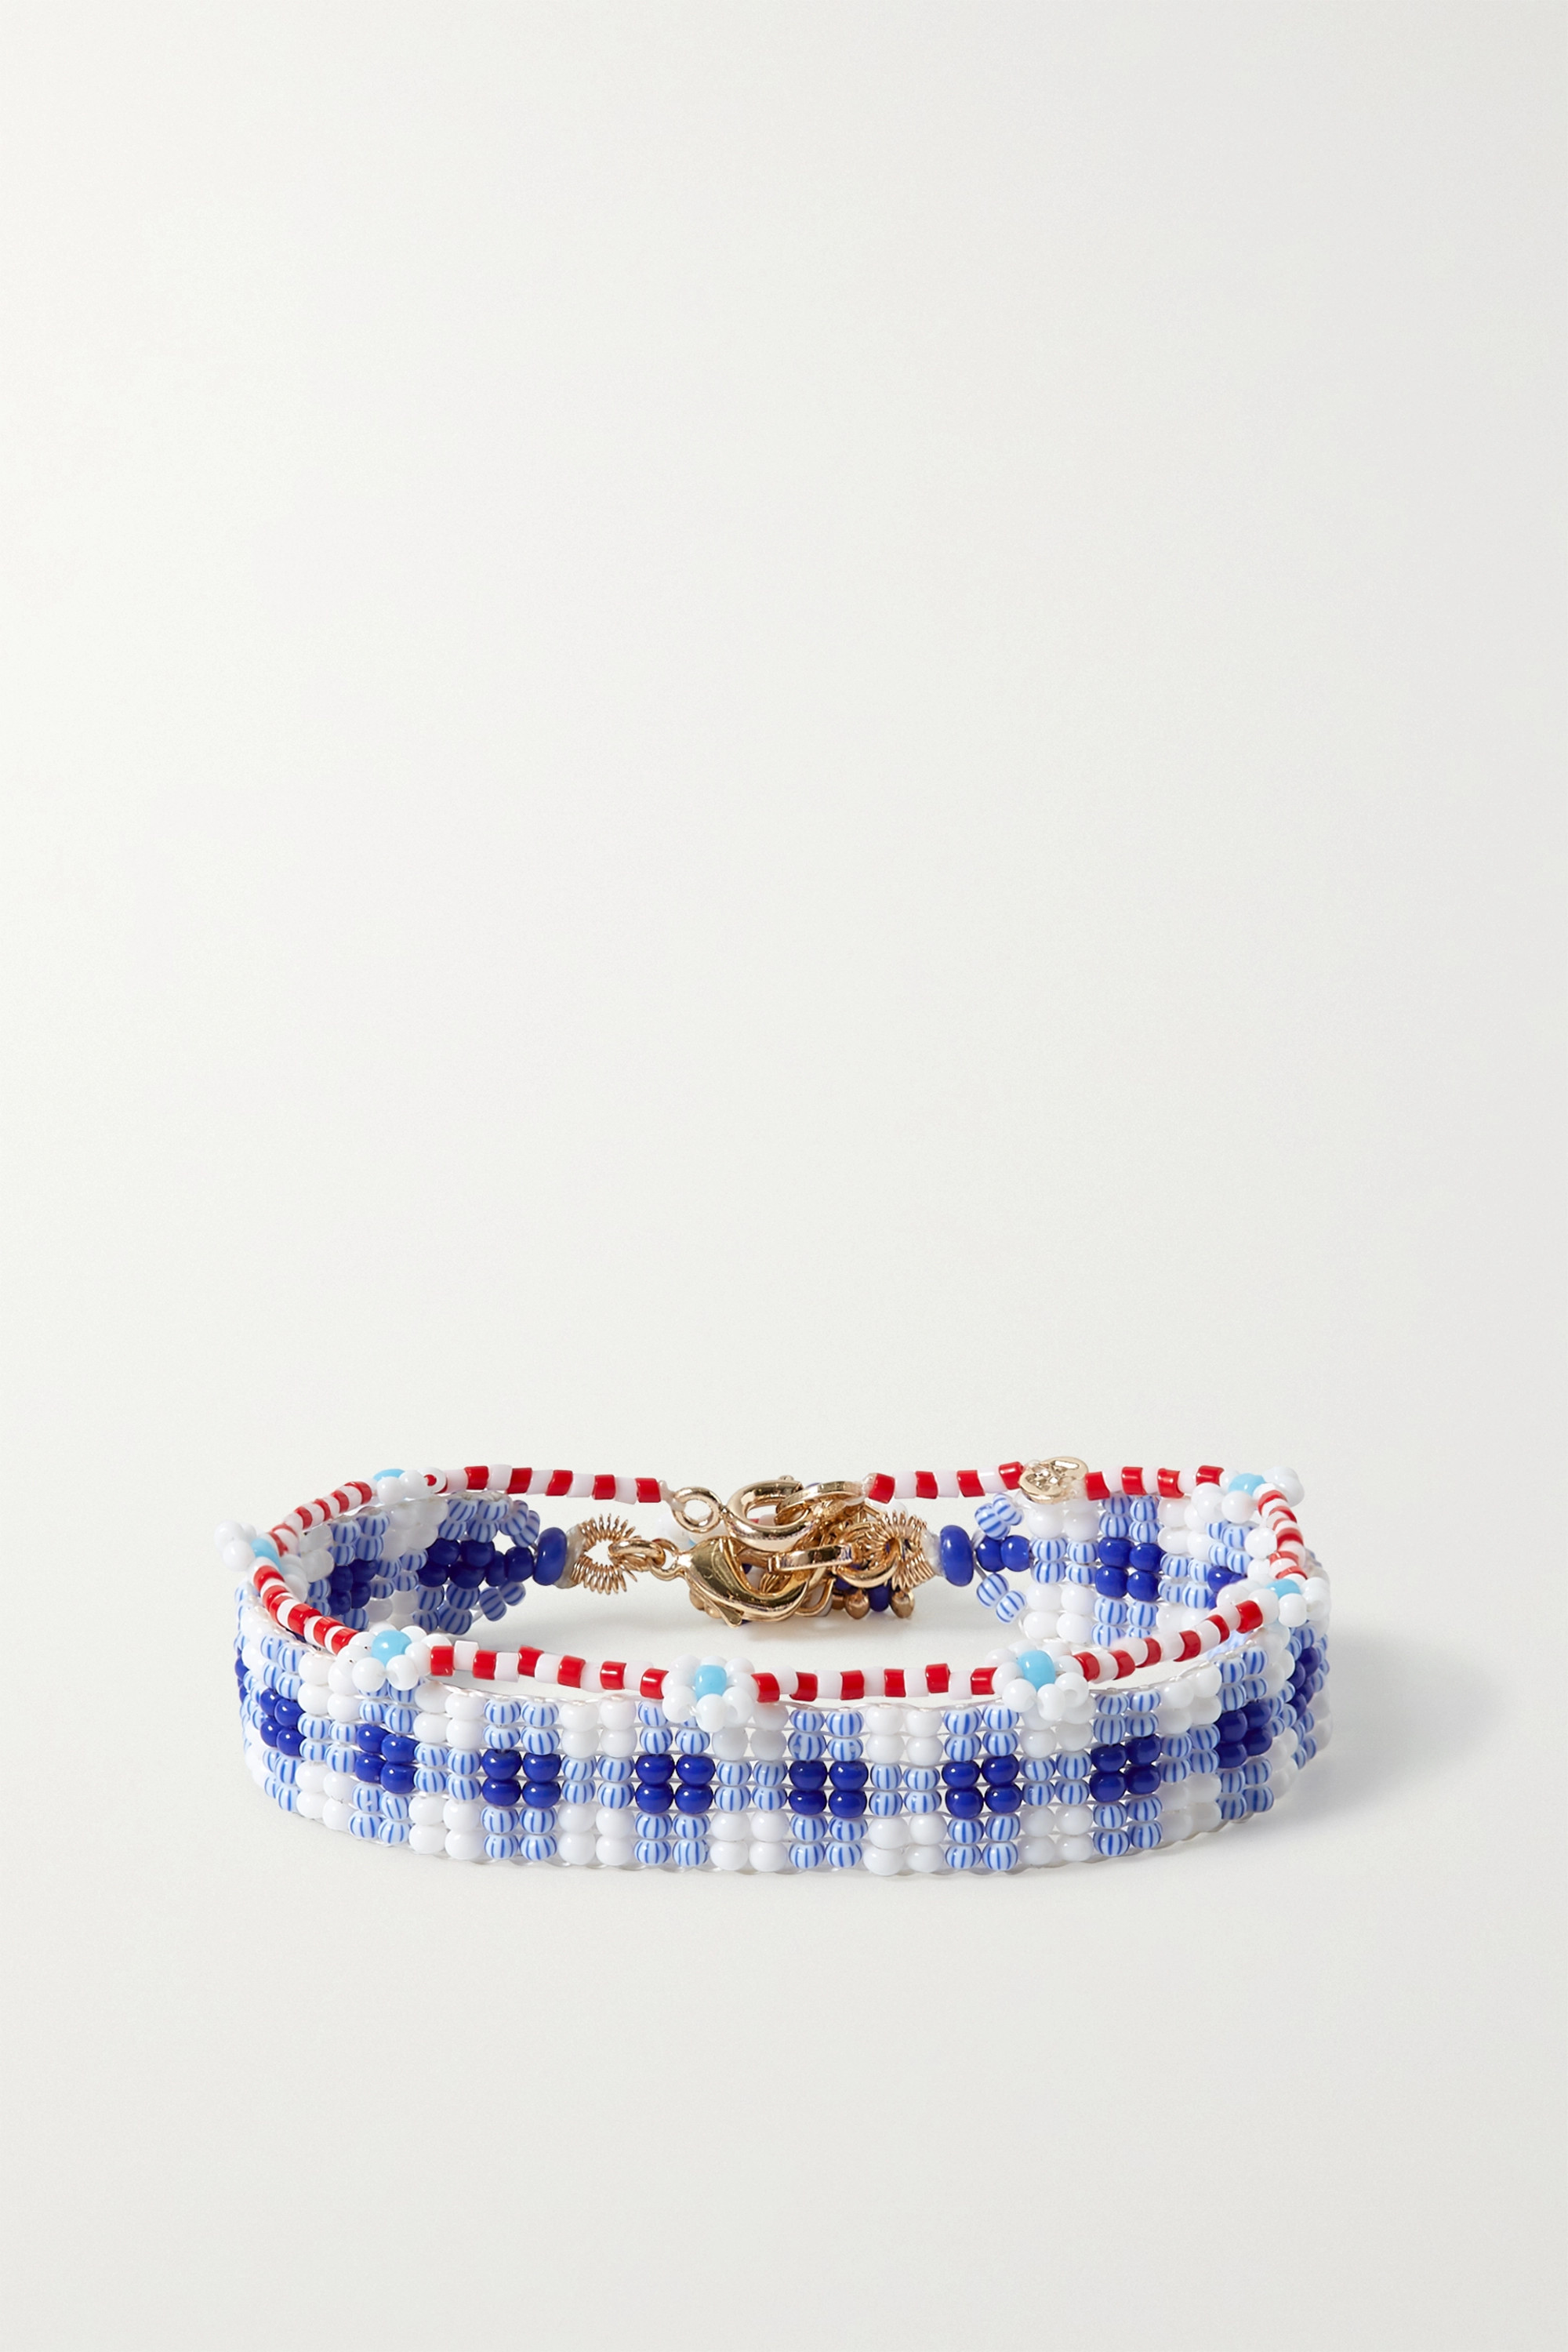 Roxanne Assoulin Gingham and Daisy set of two beaded bracelets